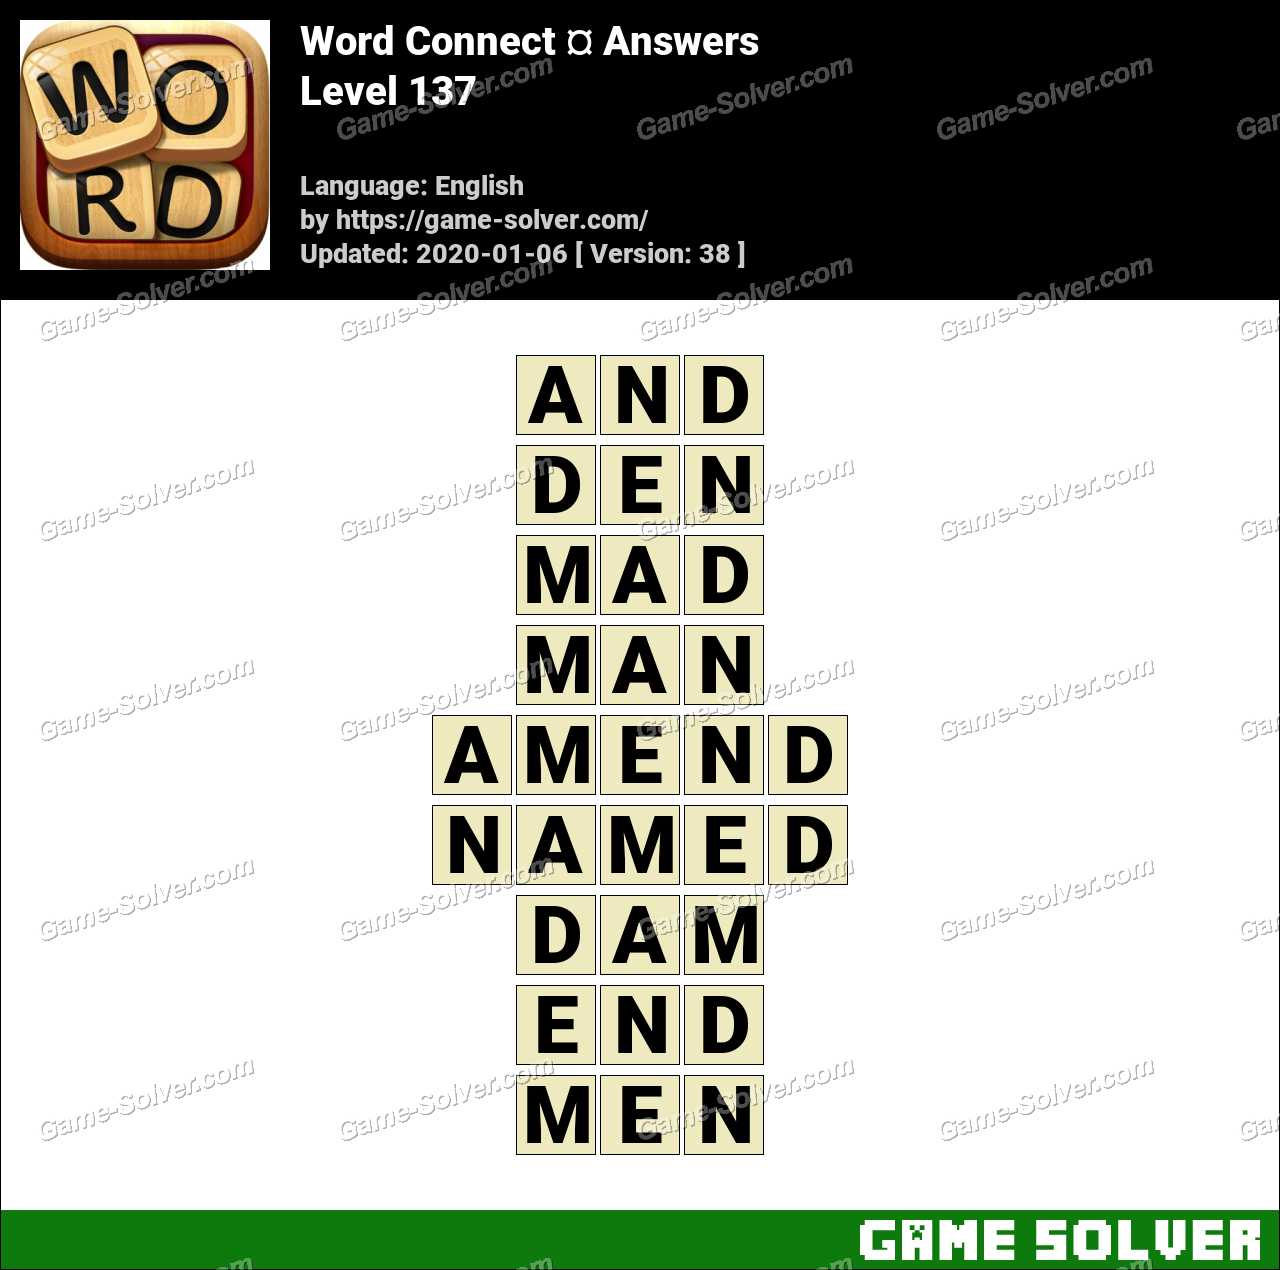 Word Connect Level 137 Answers